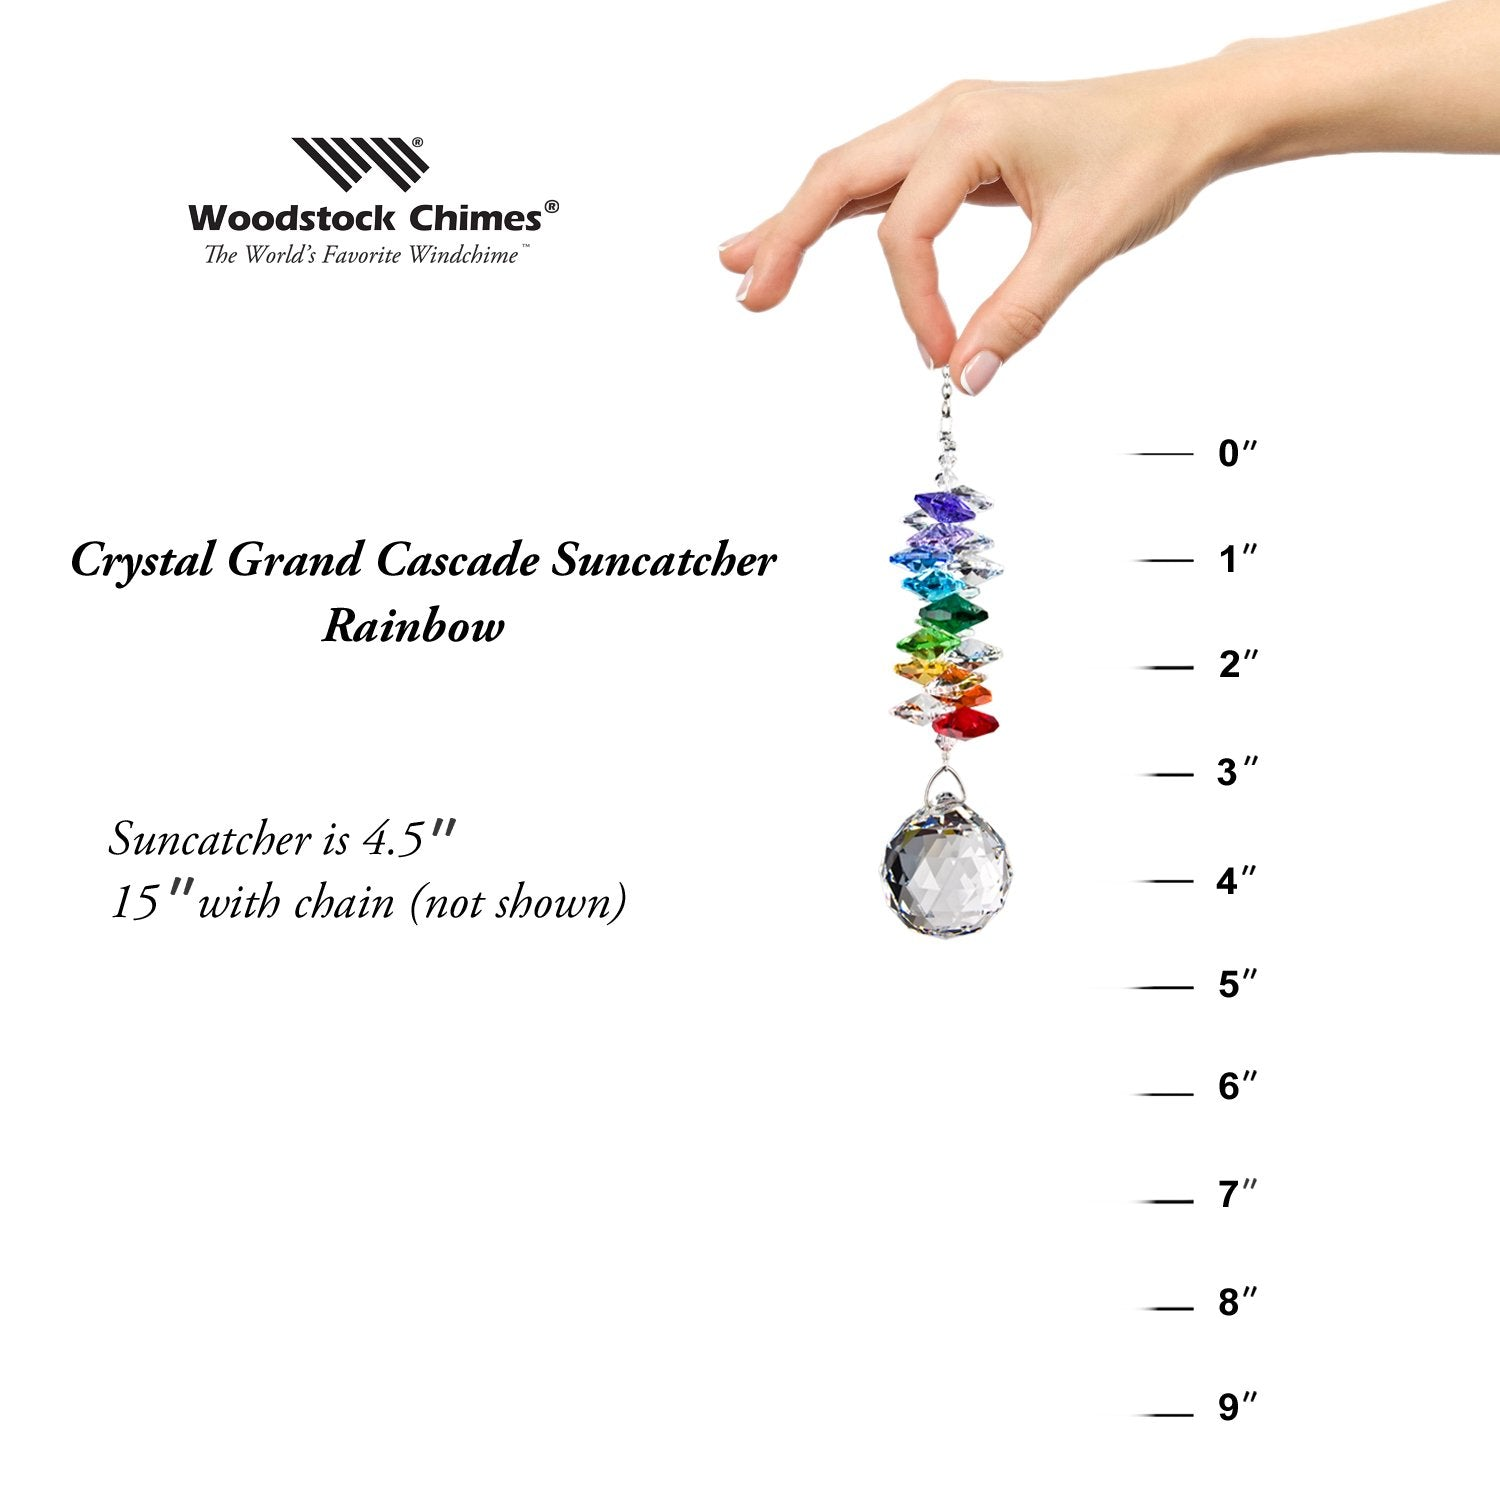 Crystal Grand Cascade Suncatcher - Rainbow proportion image